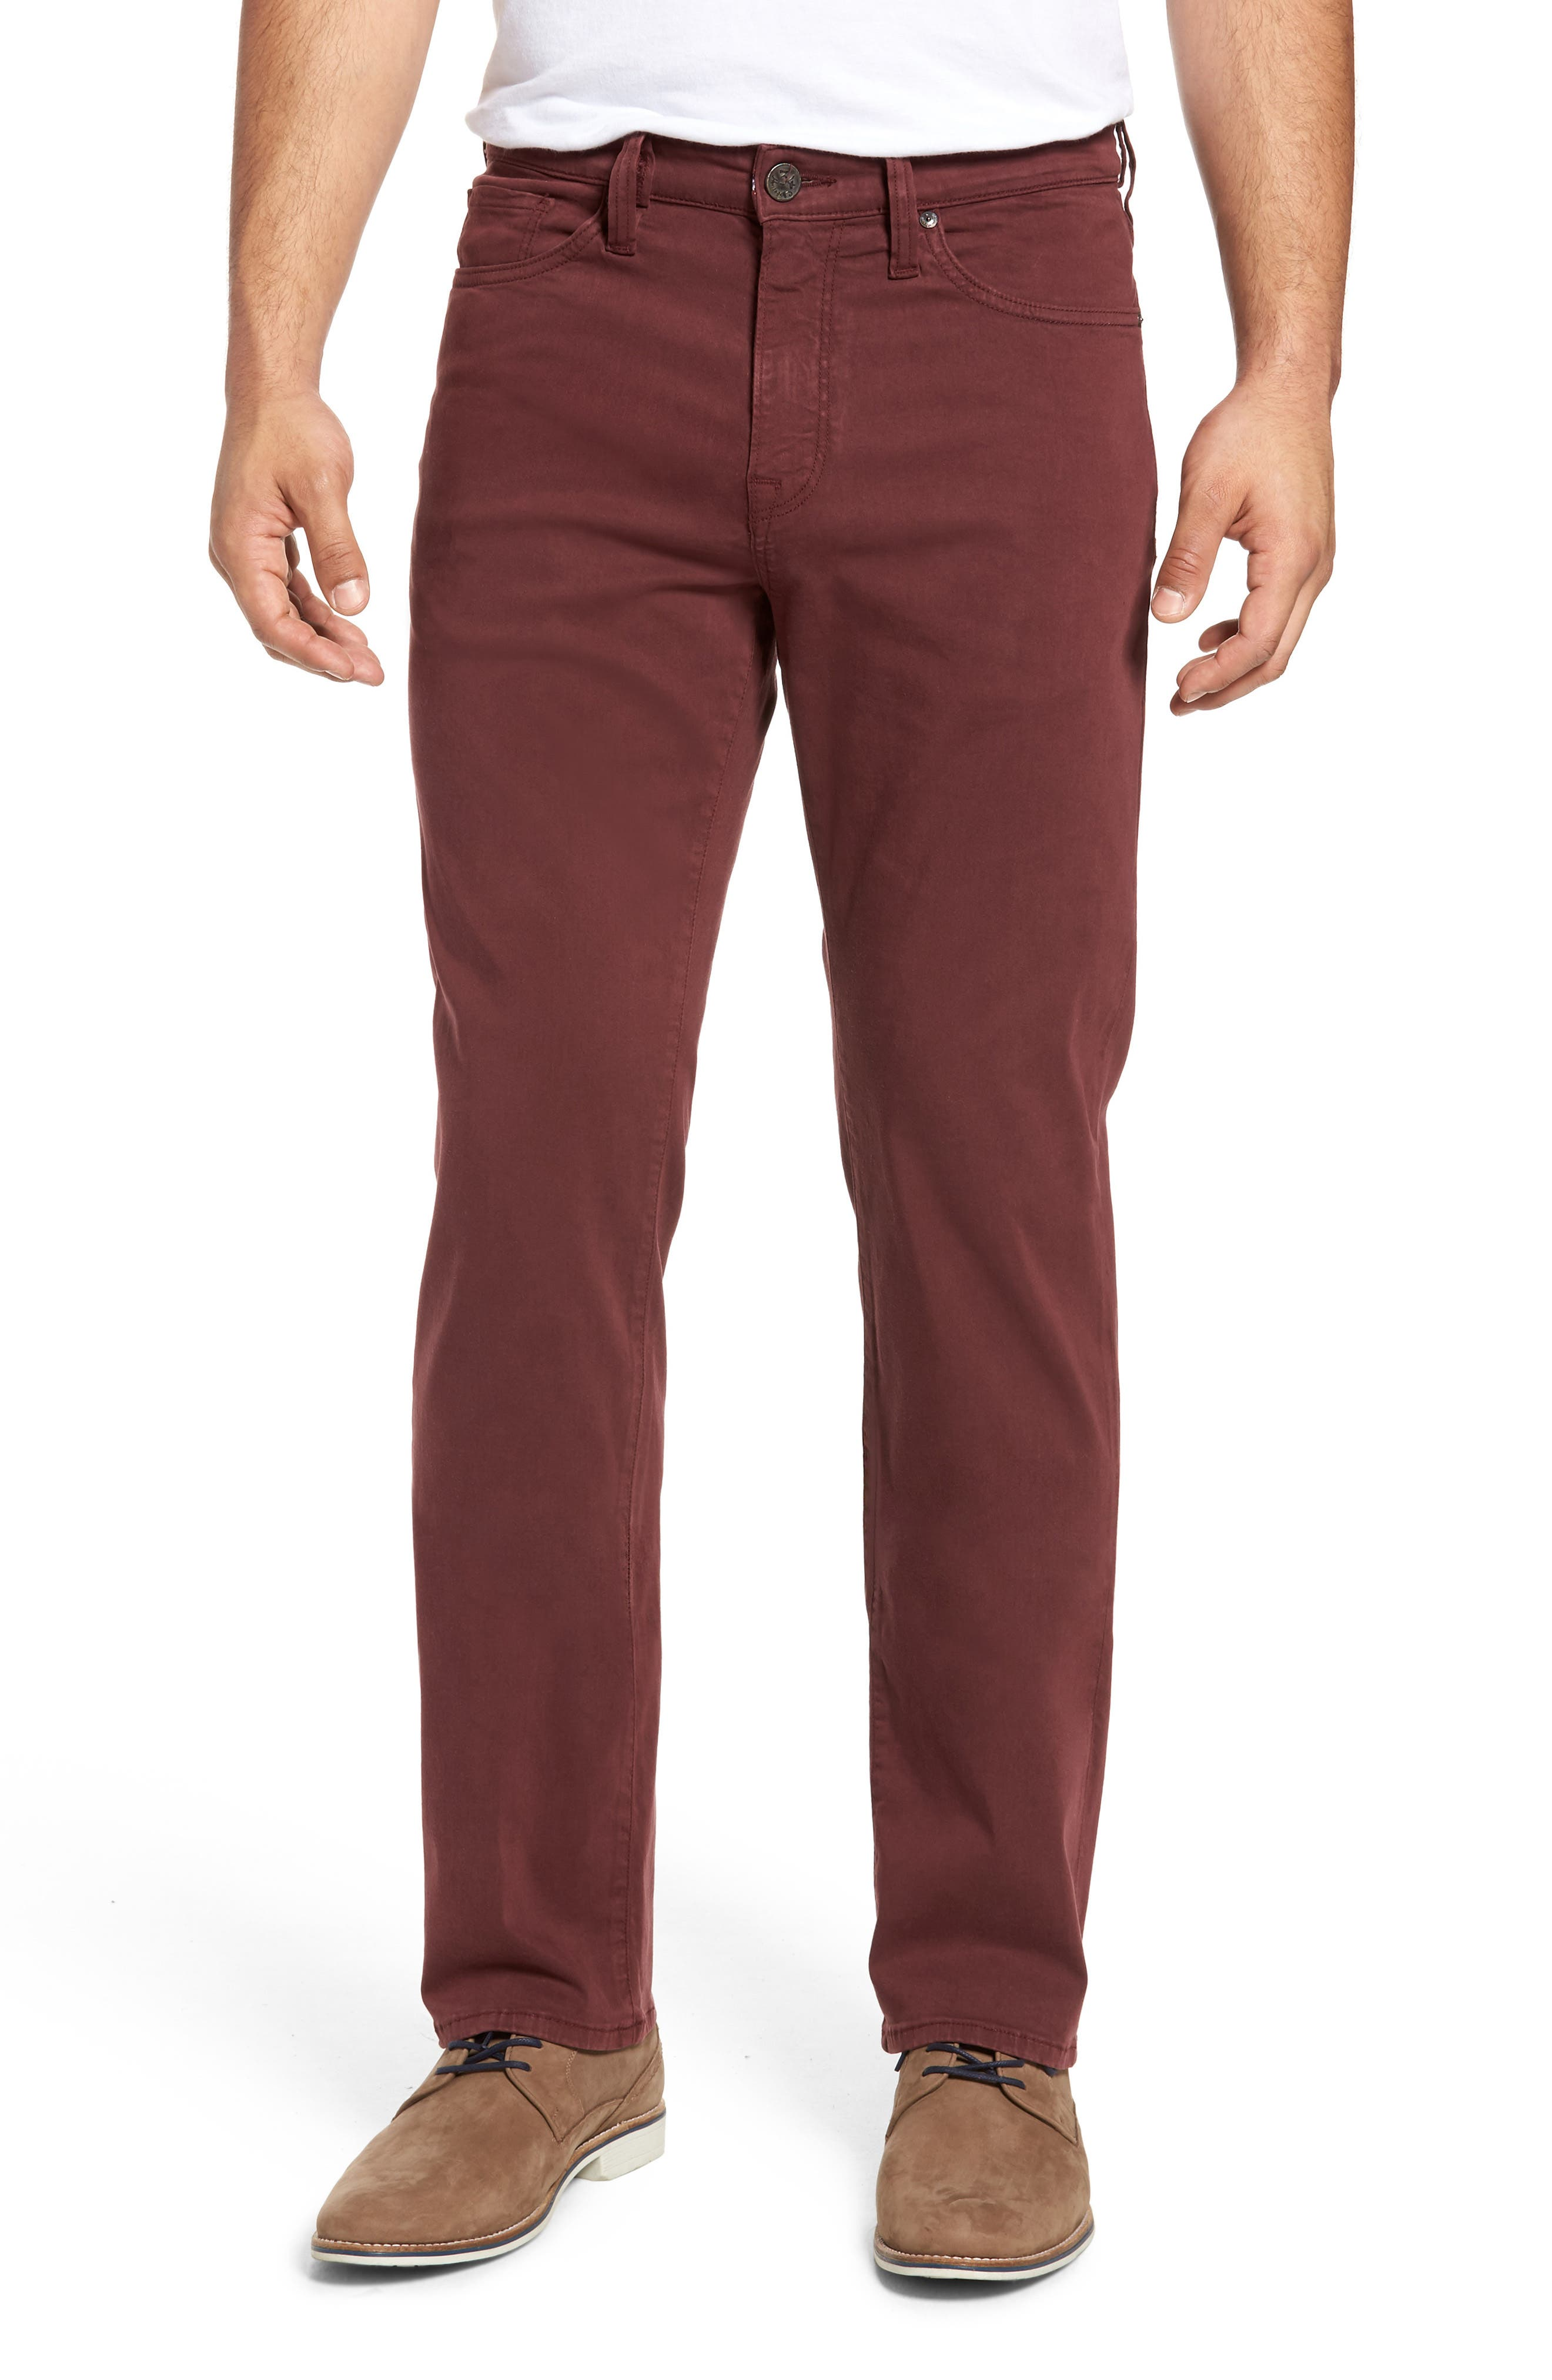 Charisma Relaxed Fit Pants,                             Main thumbnail 1, color,                             BORDEAUX TWILL